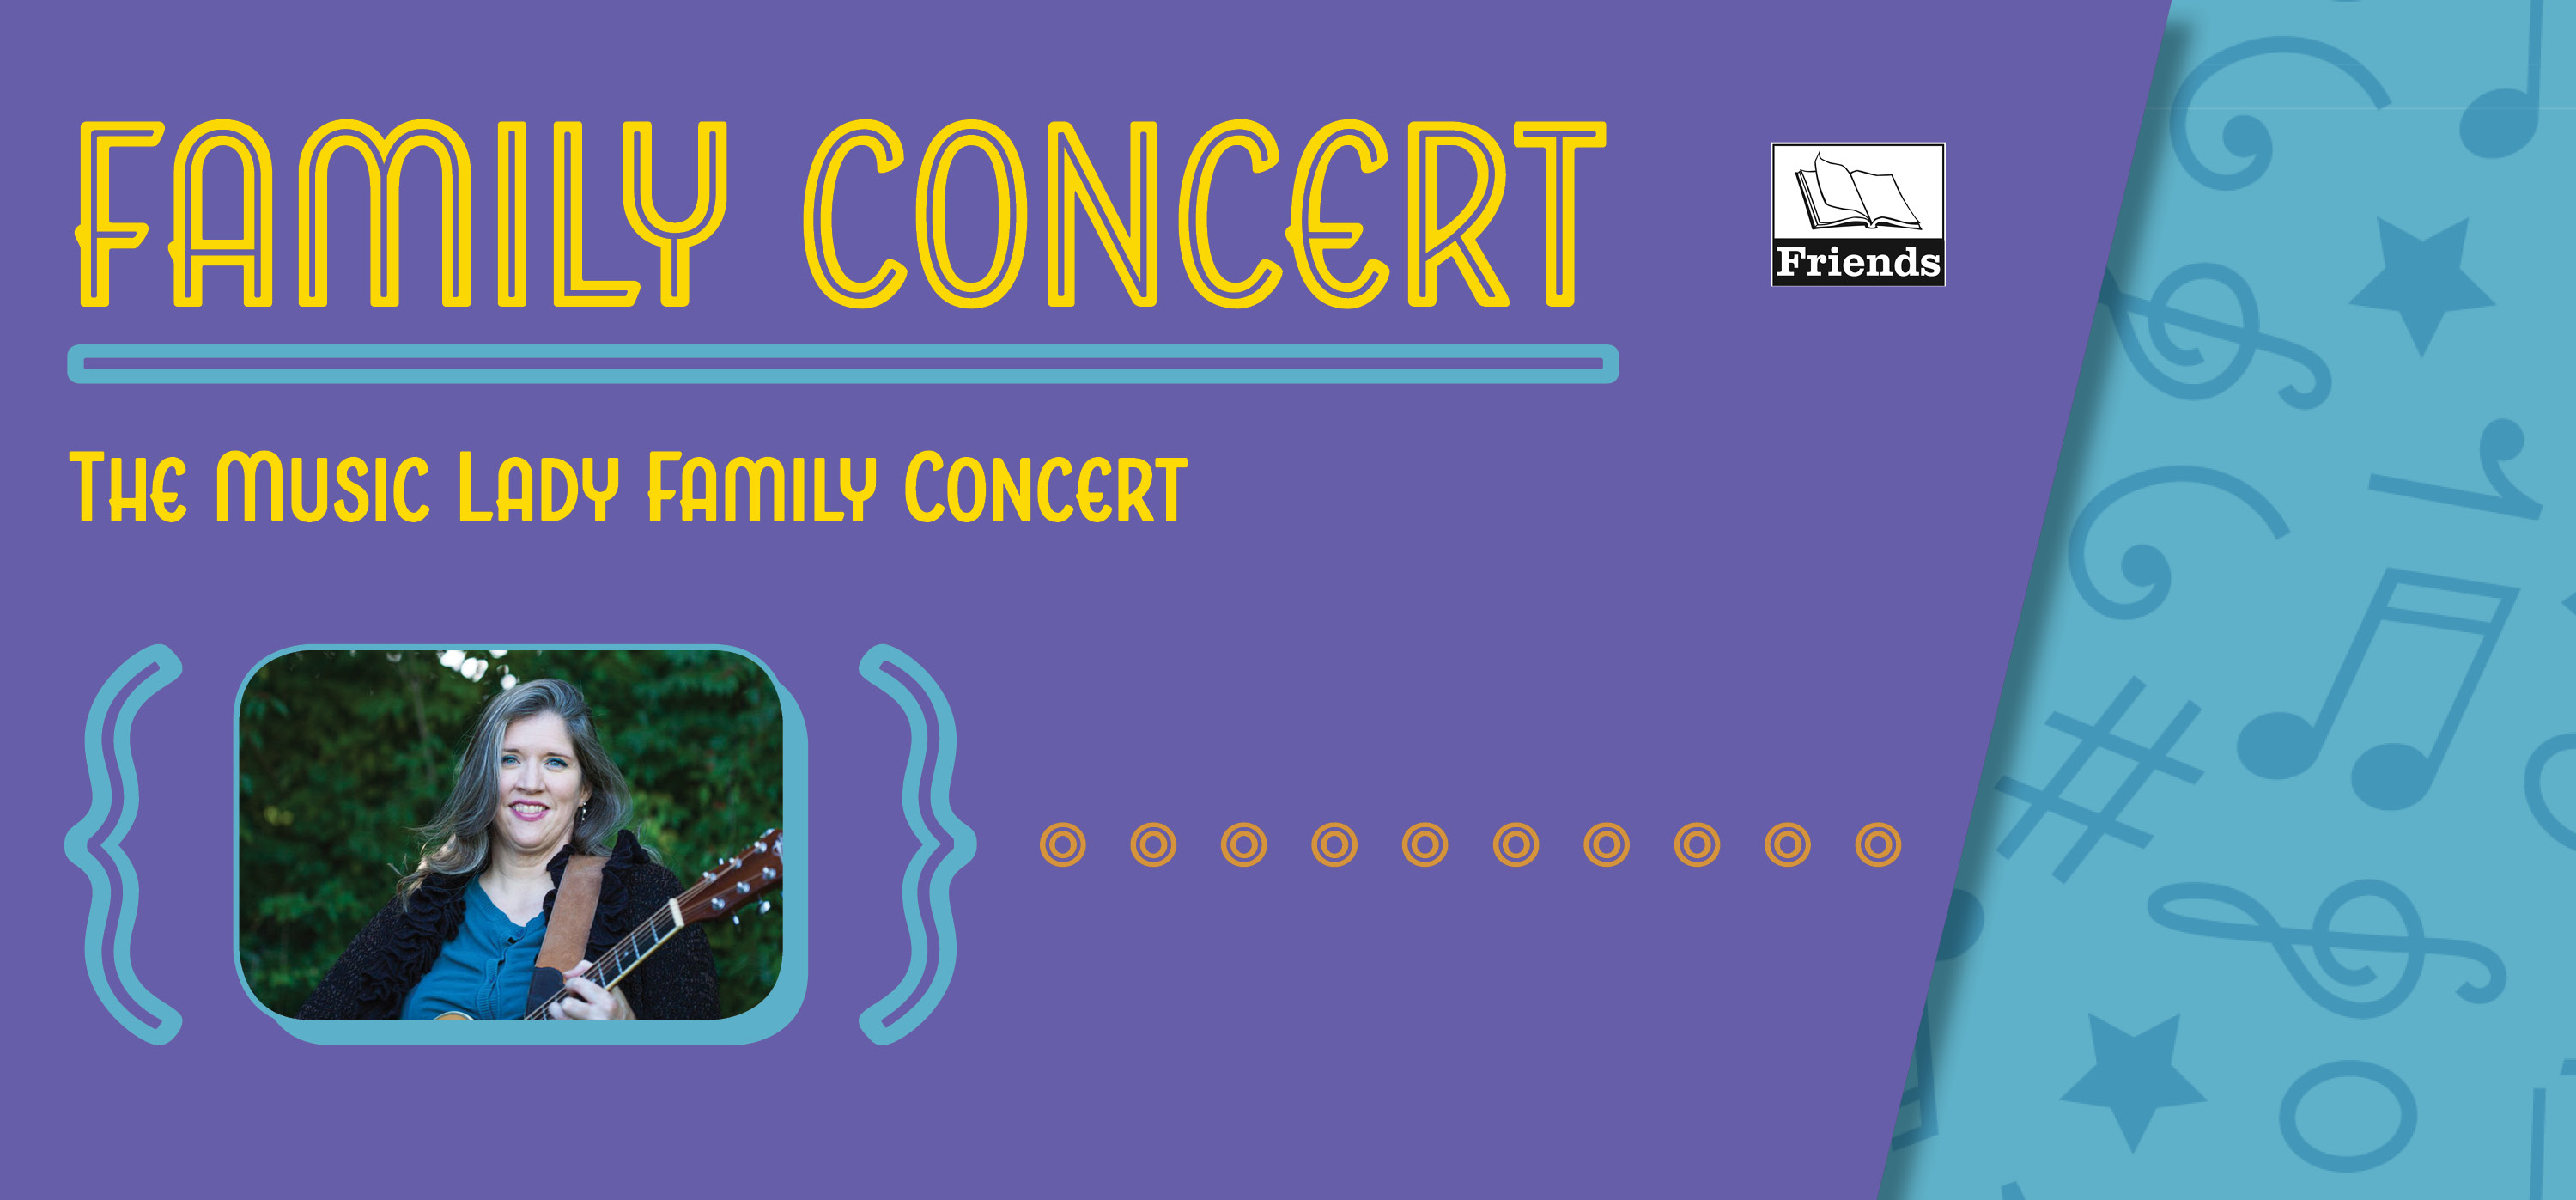 The Music Lady Family Concert